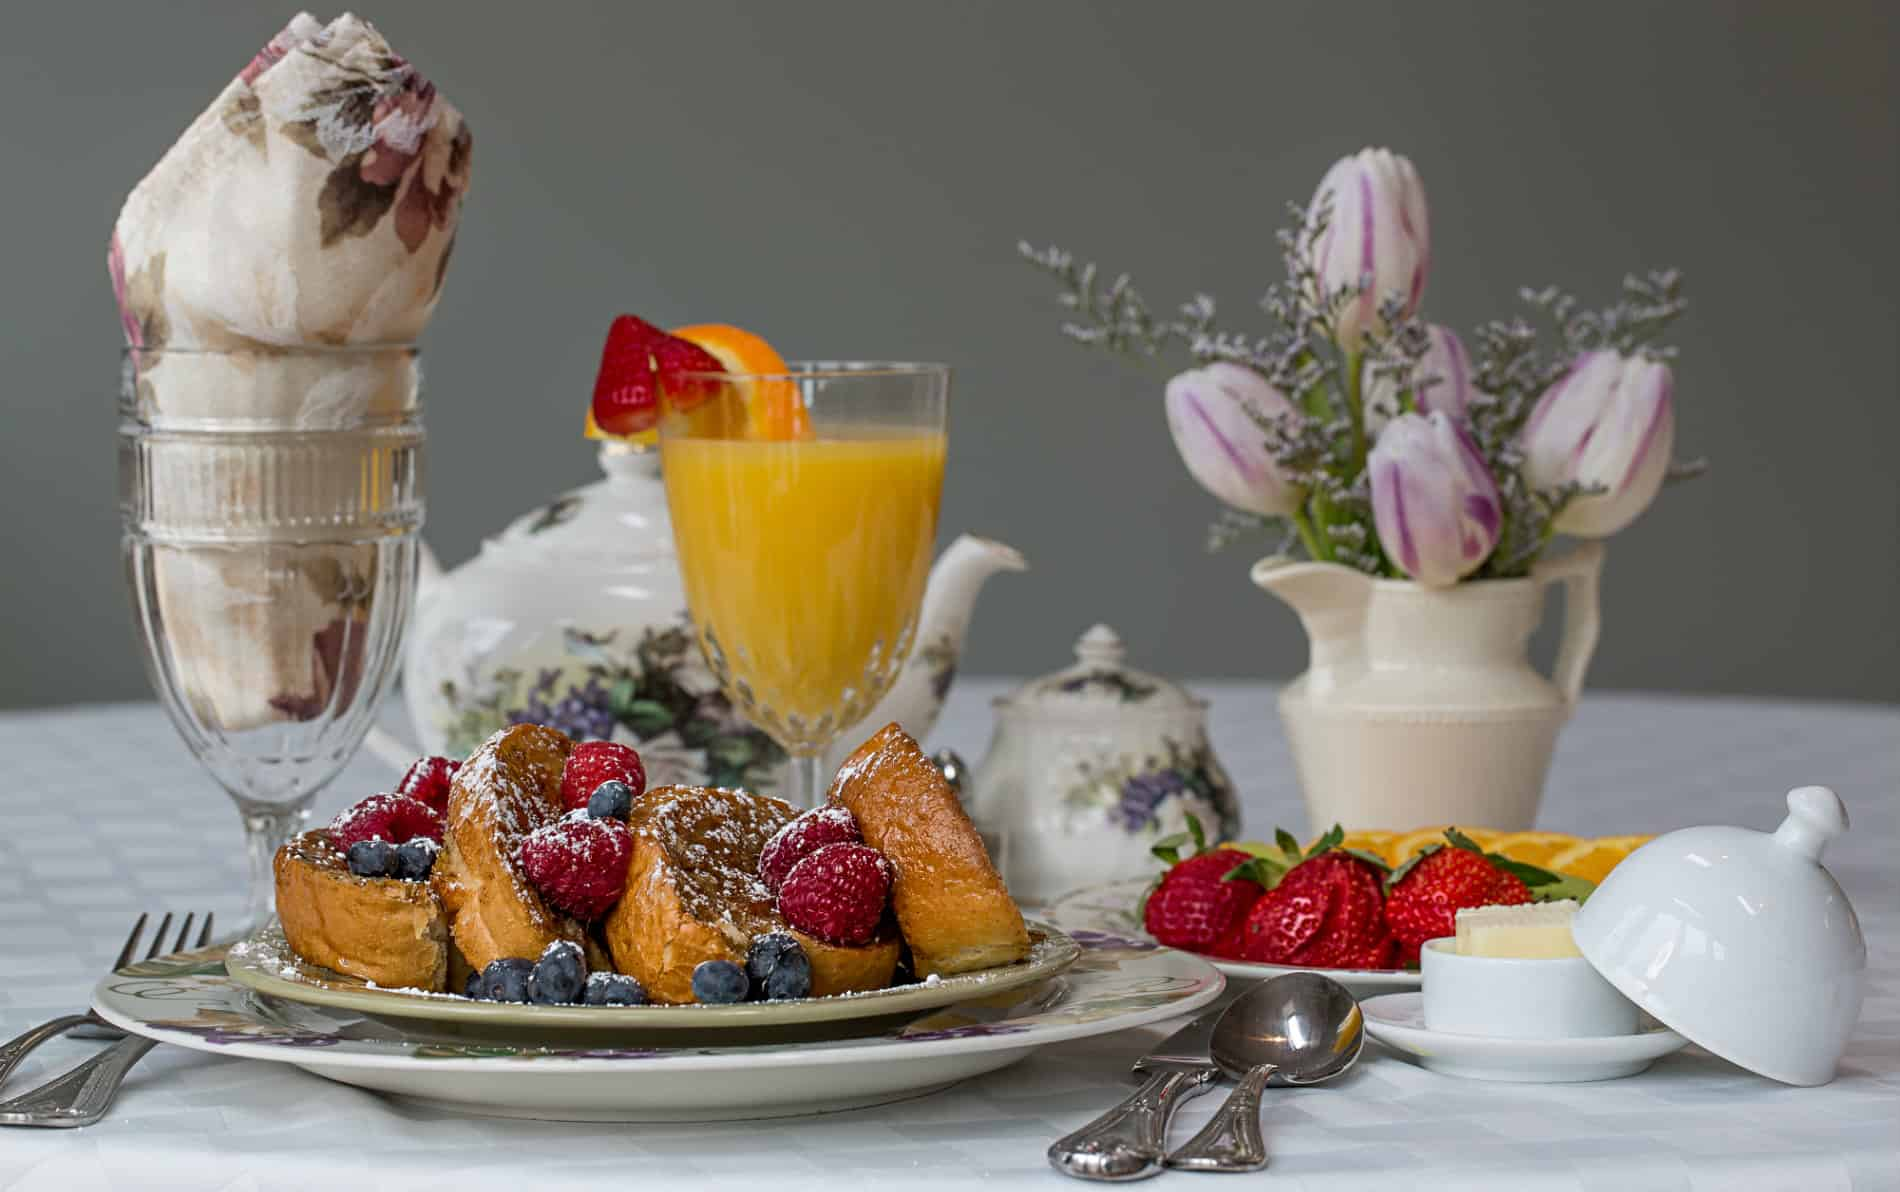 Sliced french toast with blueberries and raspberries, glass of orange juice, plate of sliced strawberries, small vase of purple tulips